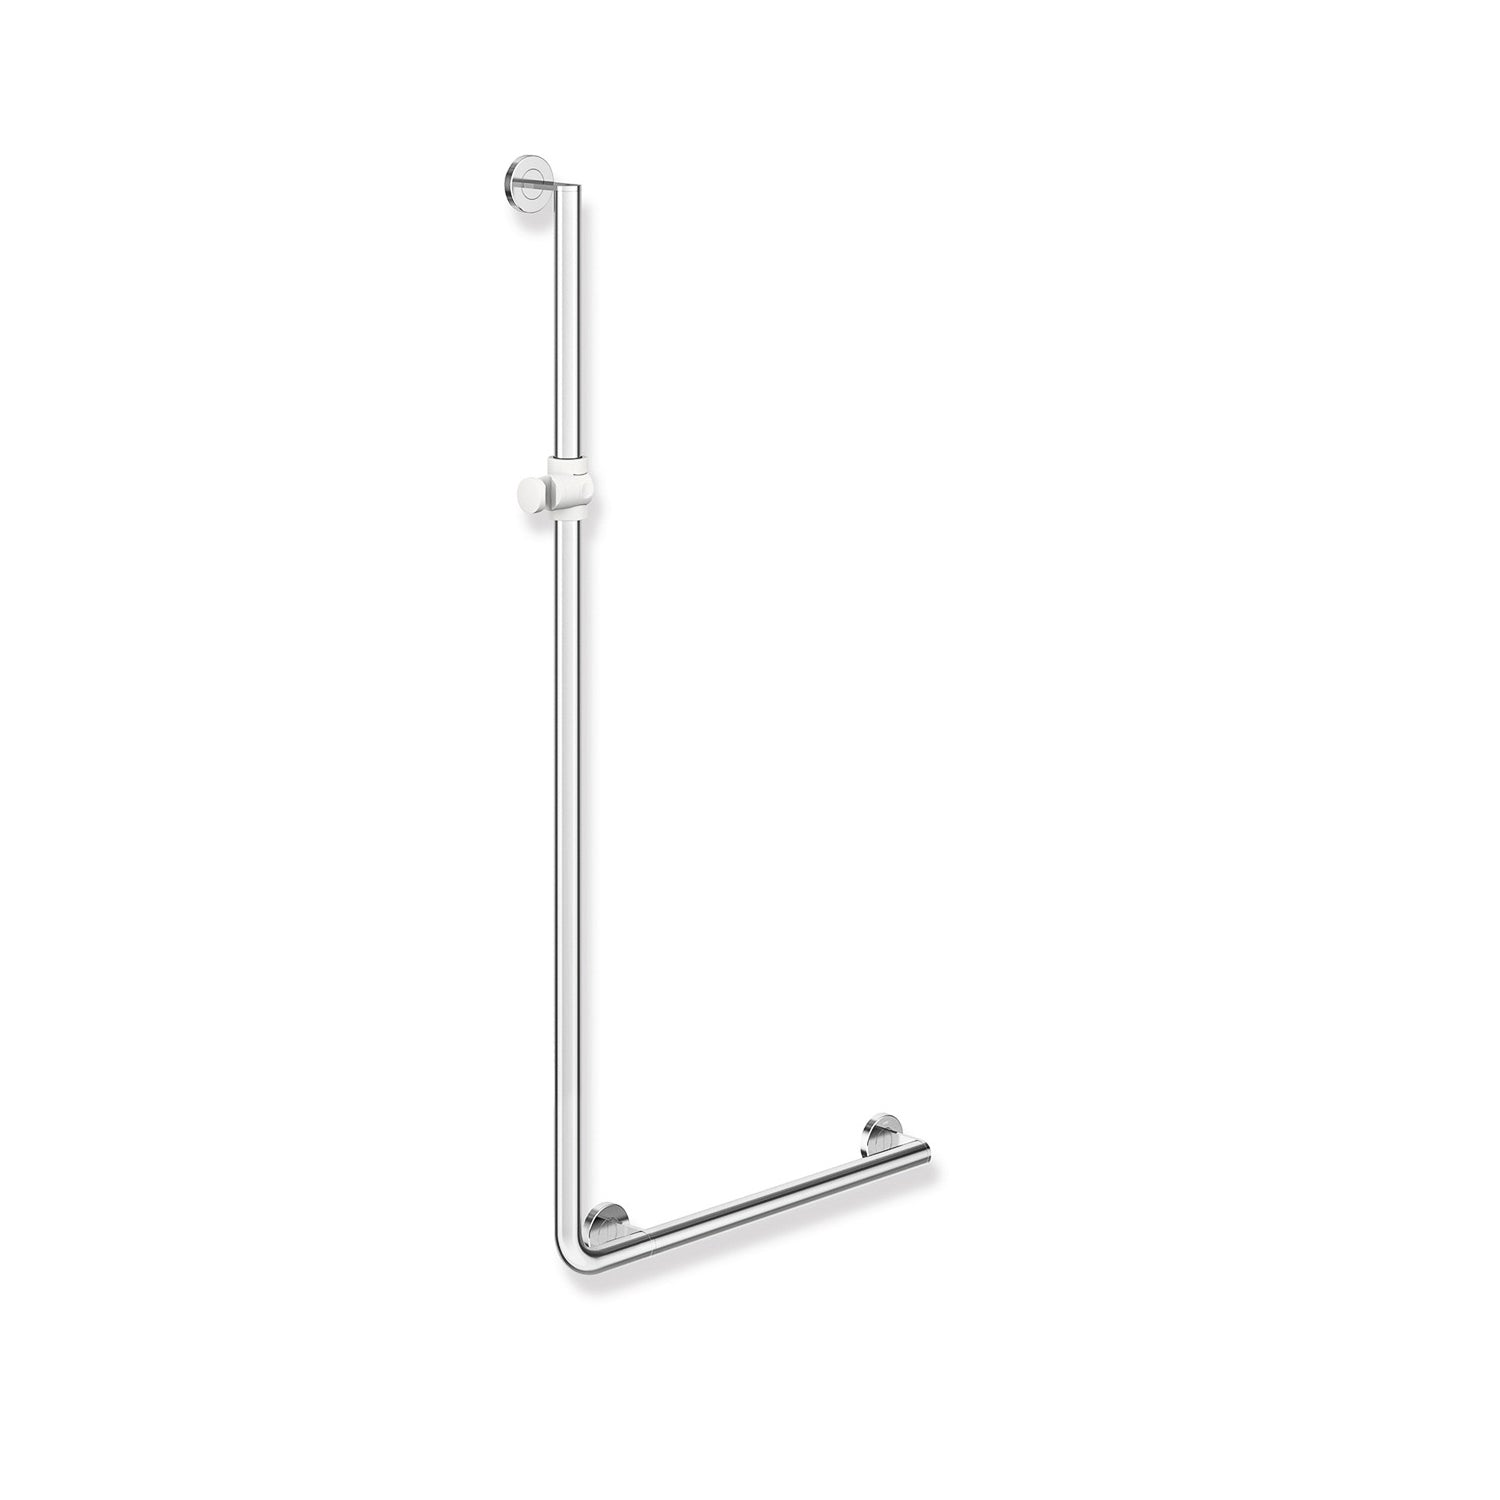 1250x600mm Right Handed Freestyle Supportive L Shaped Shower Rail with a chrome finish on a white background